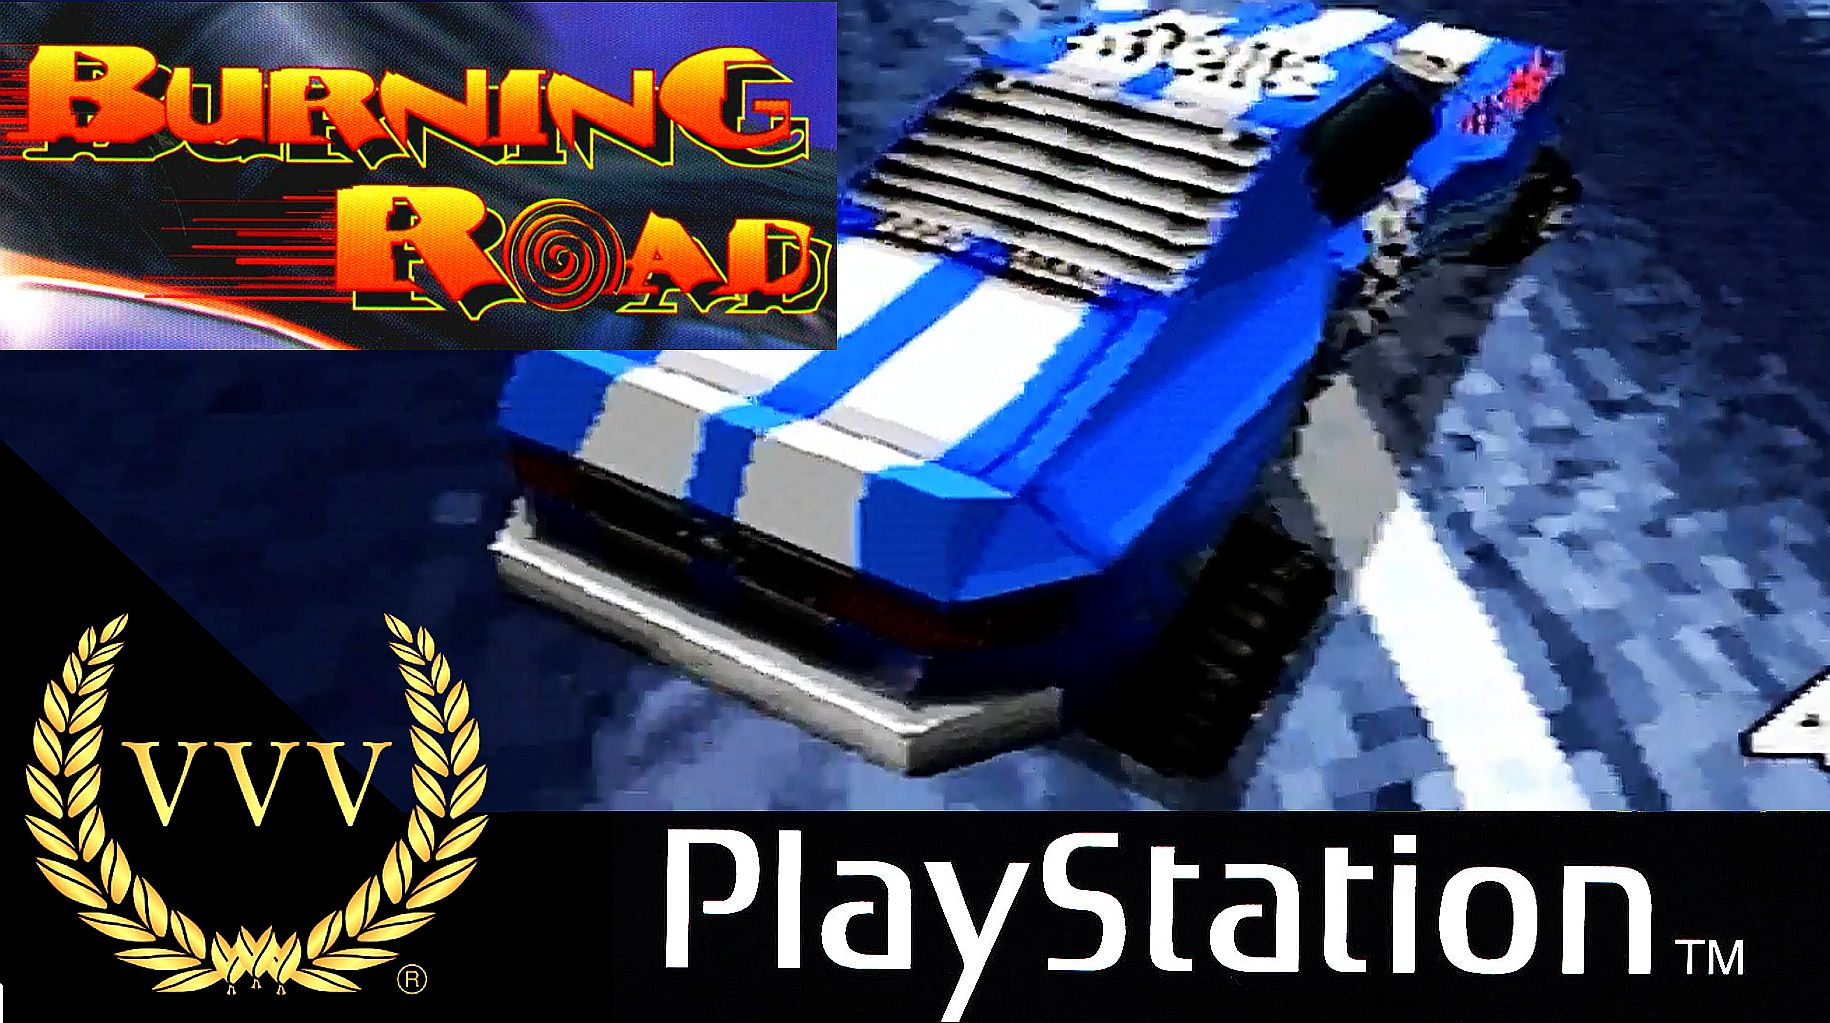 Getting our retro fix with Burning Road on the PS1